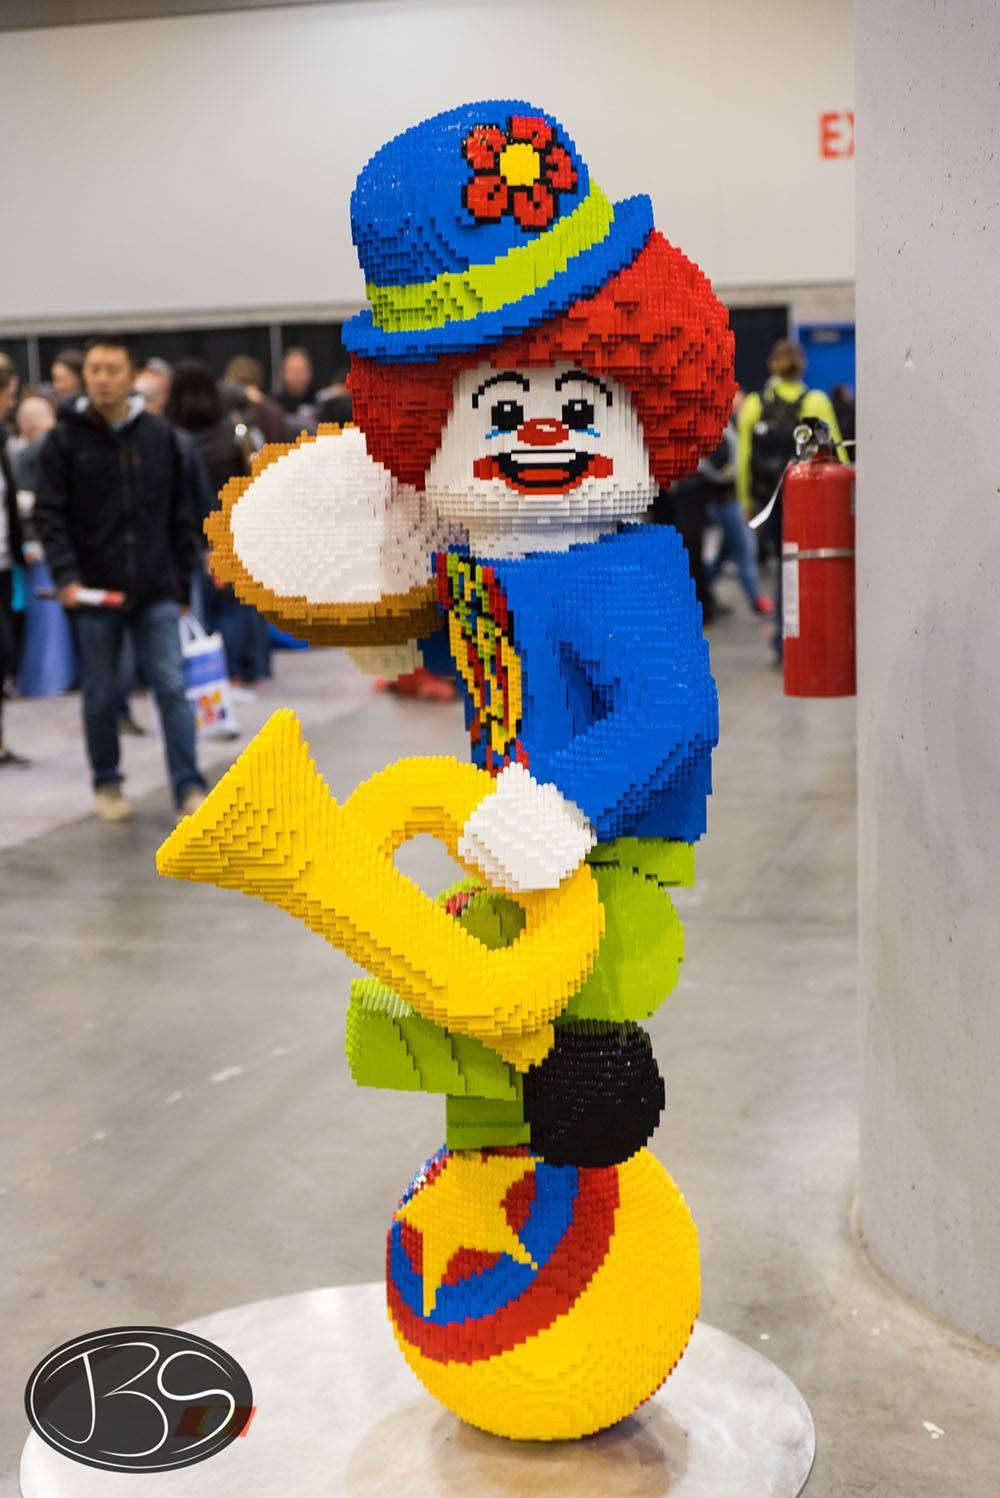 Clown at the LEGO Imagine Nation Tour in Vancouver (Justin Siu)